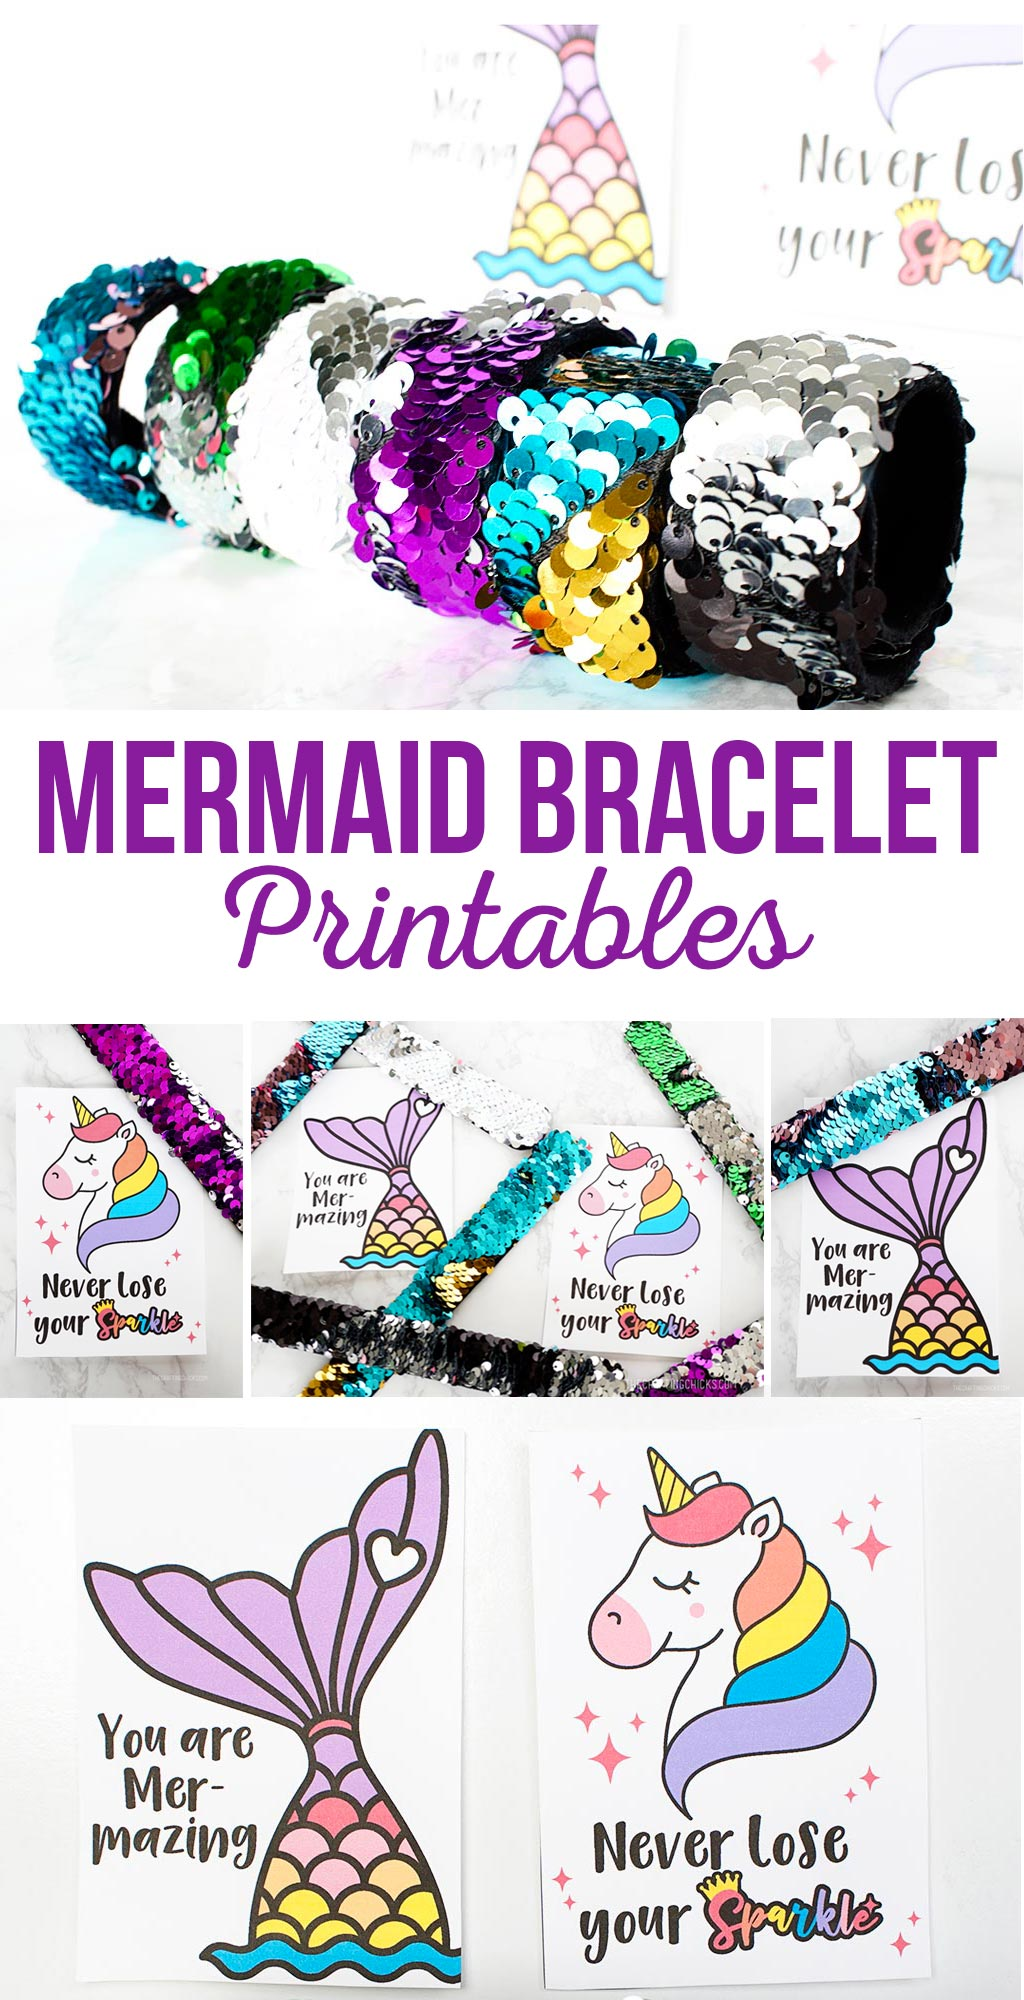 Mermaid Bracelet Printables